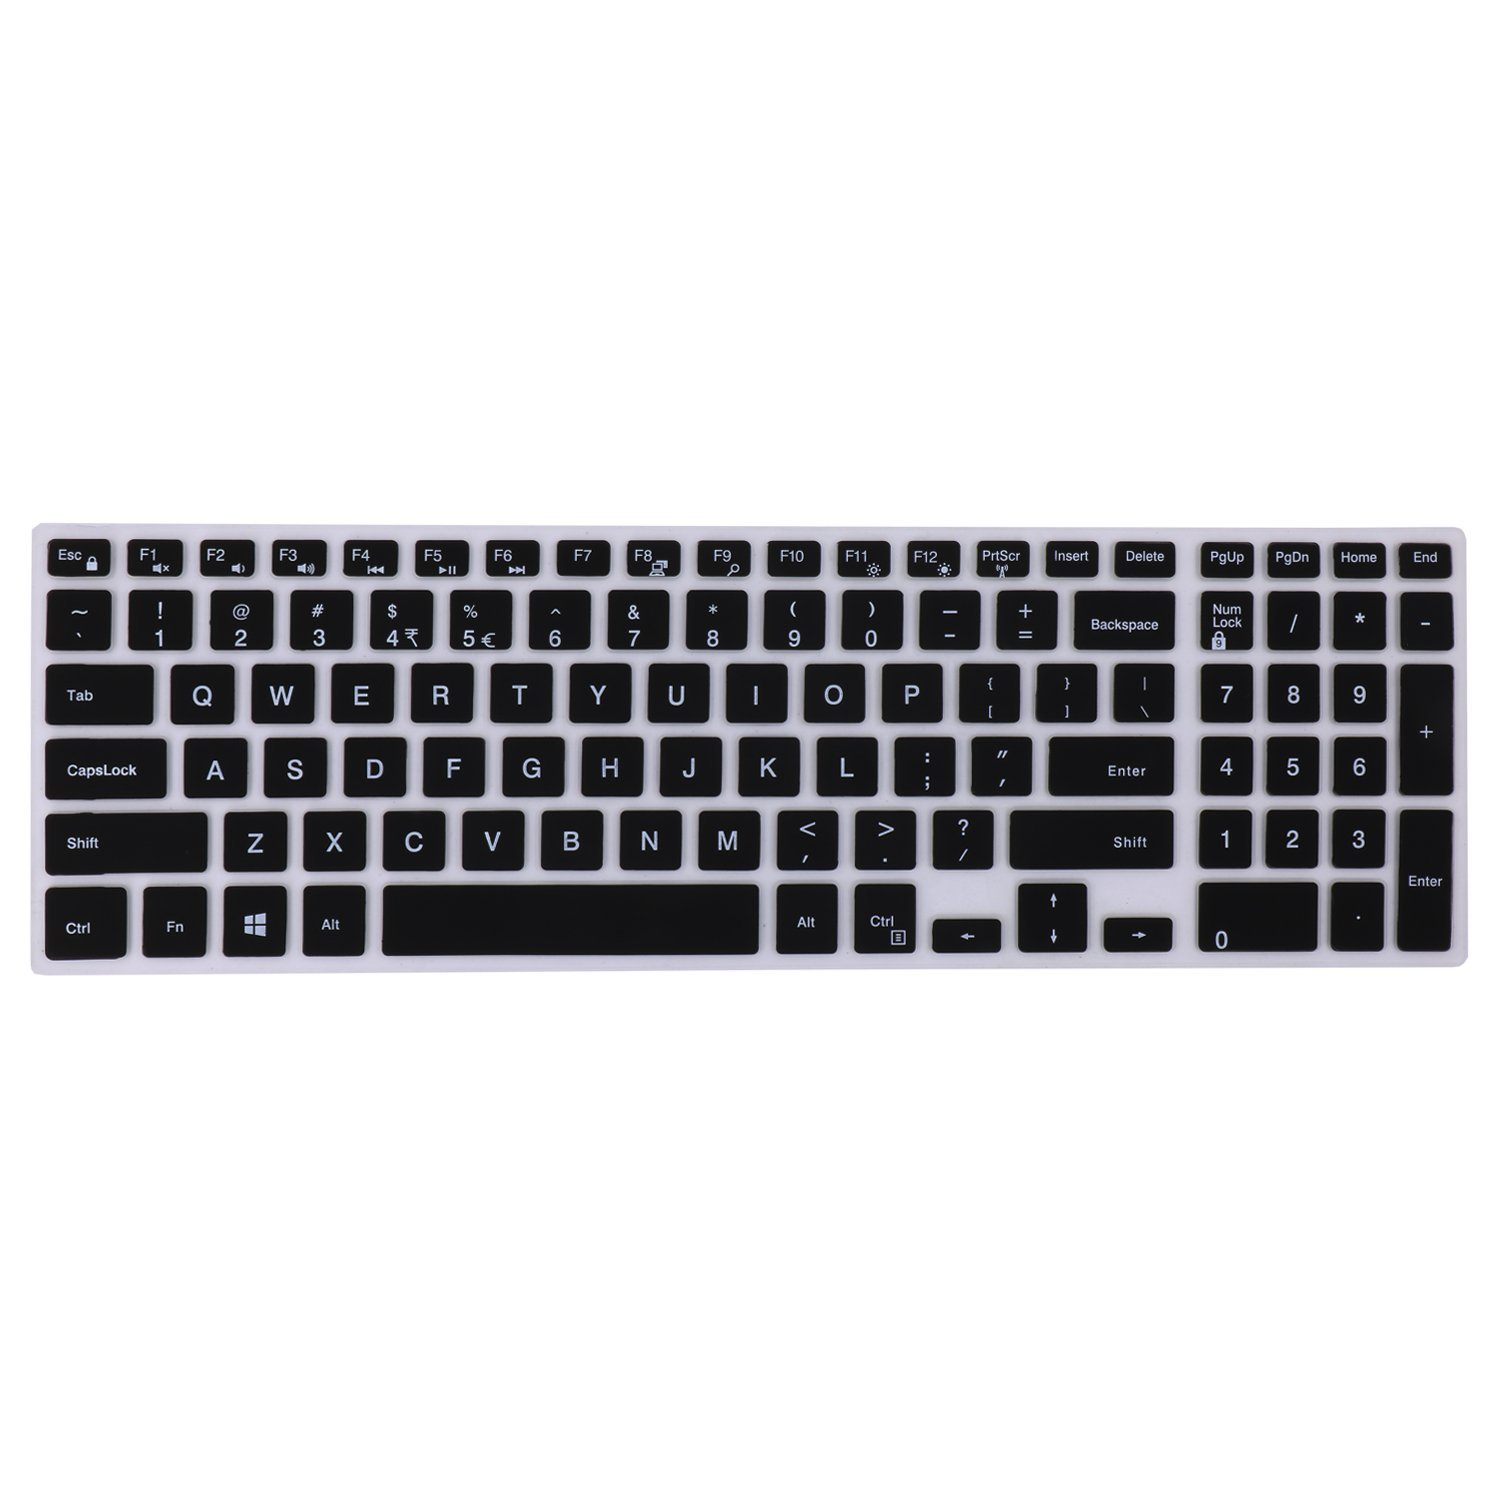 FORITO Thin Dell Keyboard Cover for 15.6-inch DELL Laptop Inspiron 15 i5558, Dell Inspiron 15 3000 5000, Inspiron 17 5000 series laptop, Keyboard Protector Dell Inspiron 15 Laptop US Layout (Black)